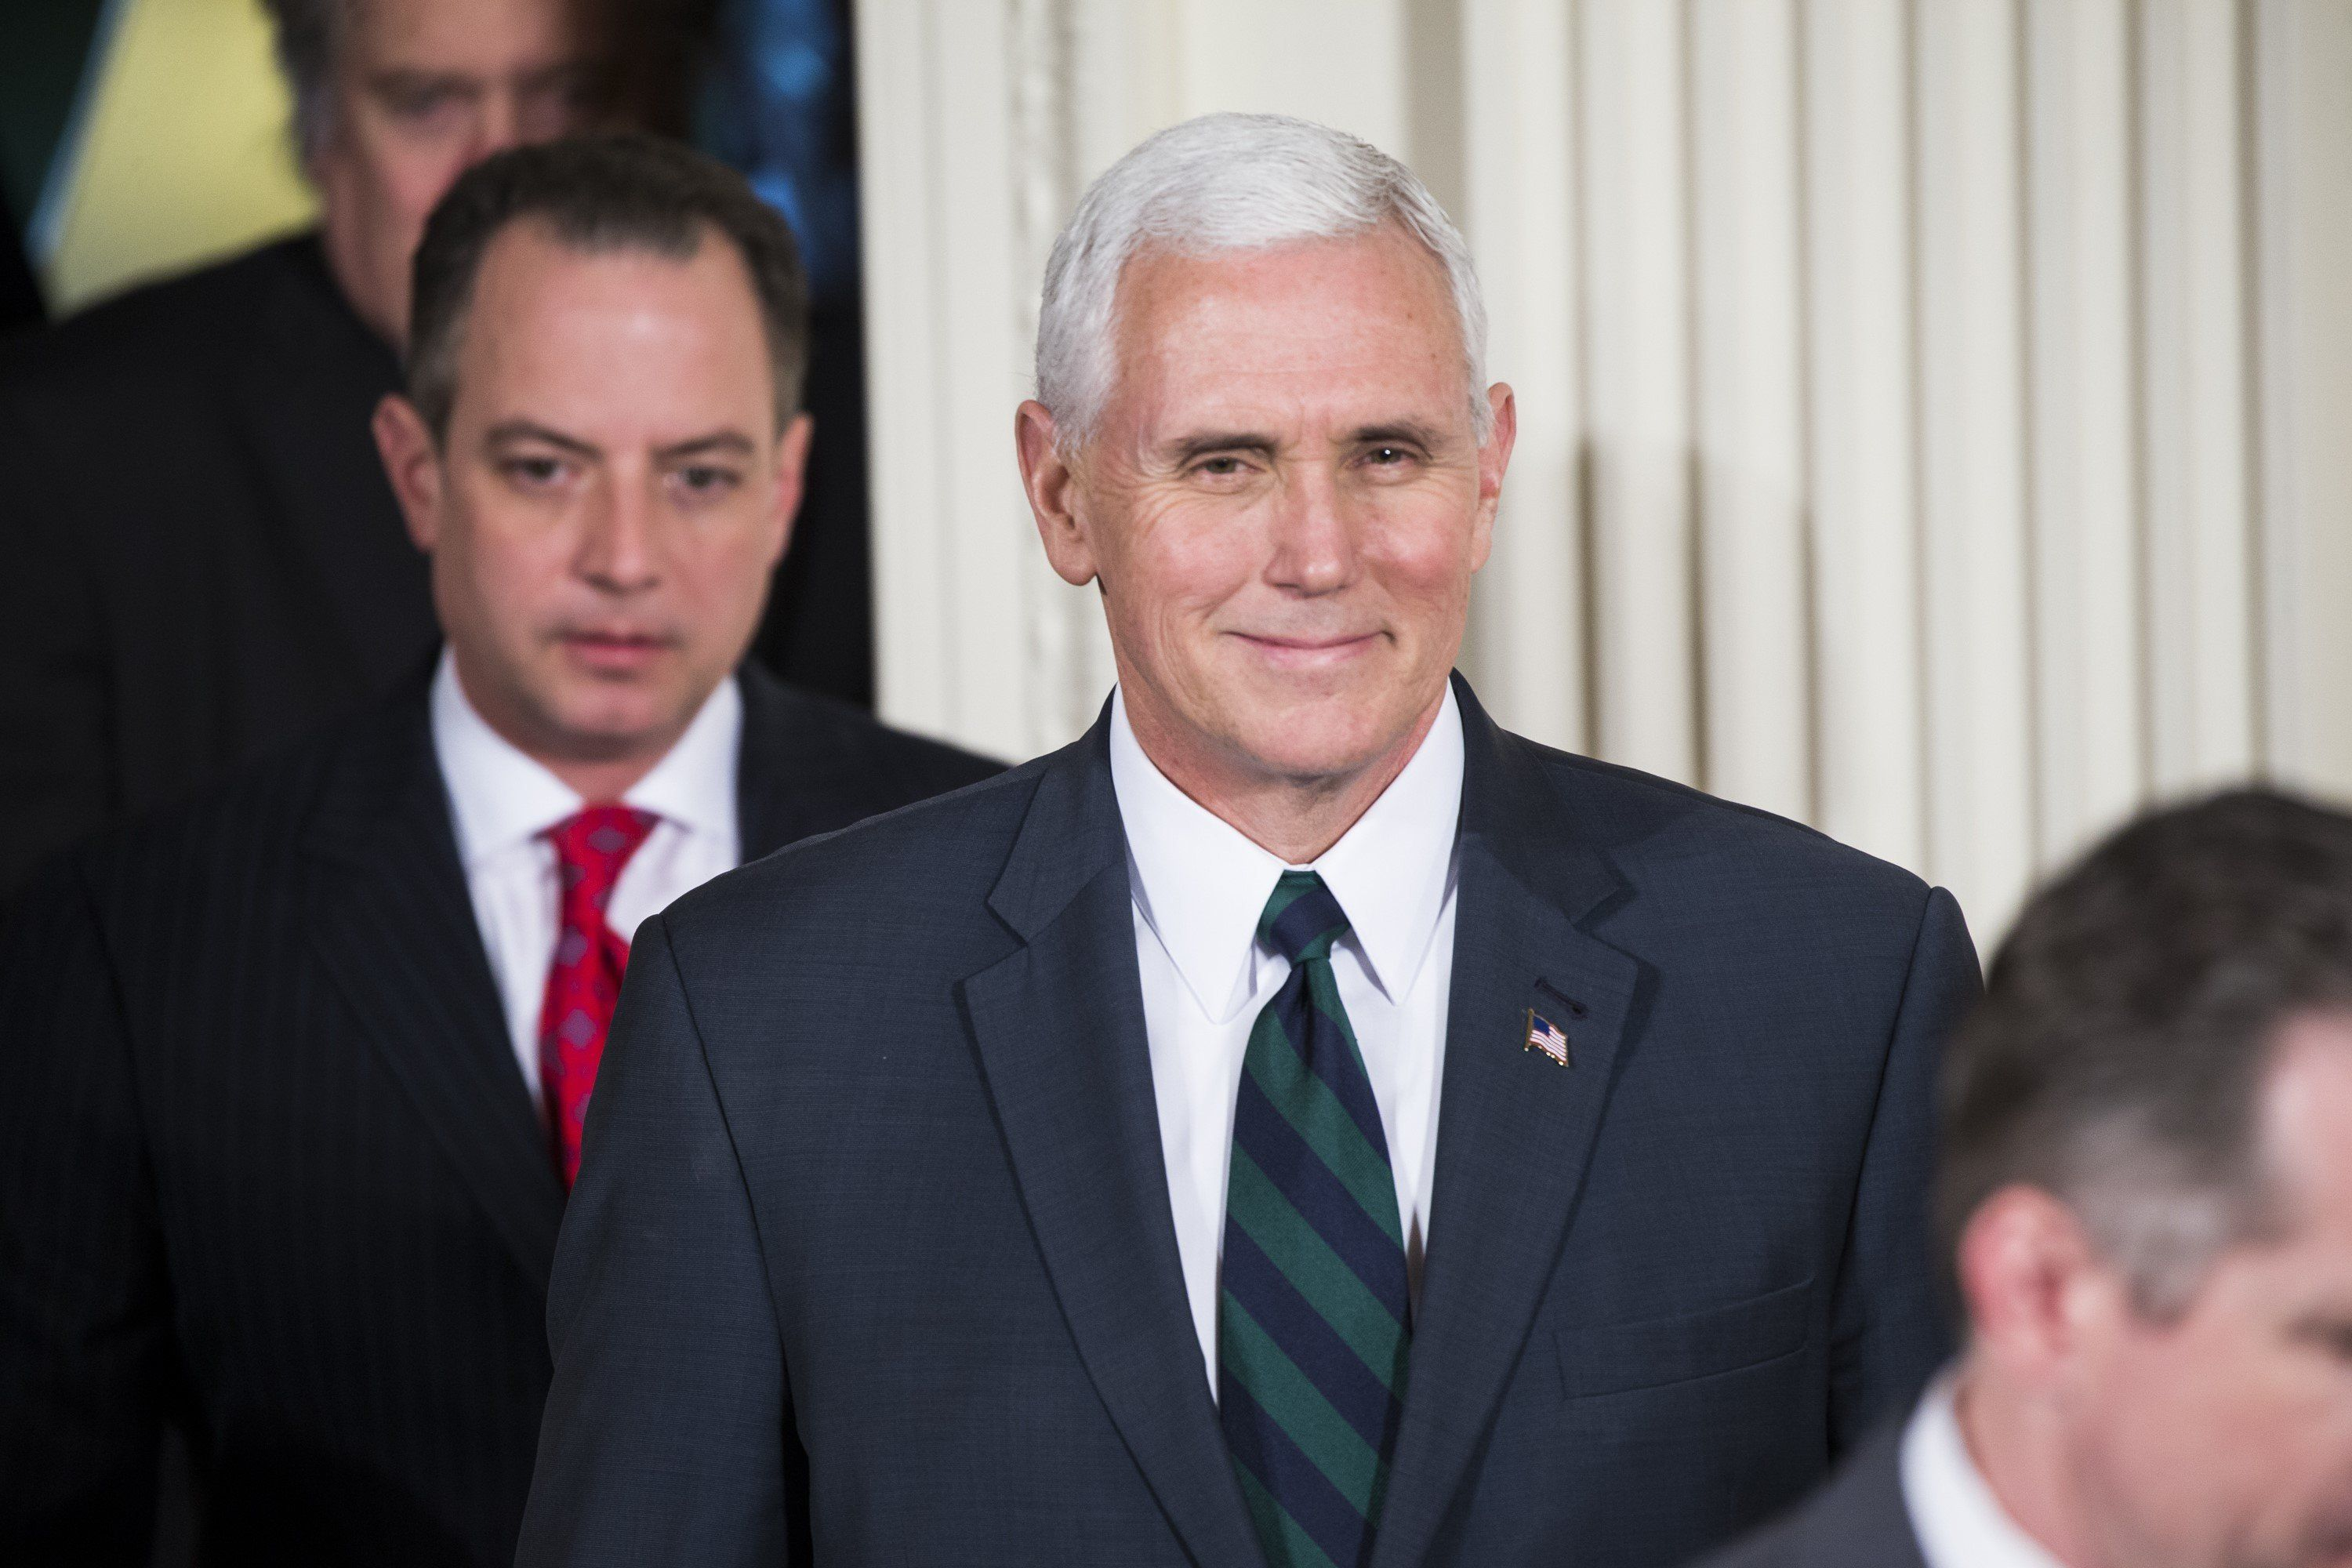 MARCH 17: Vice President Mike Pence arrives for a joint press conference by U.S. President Donald Trump (not seen) and German